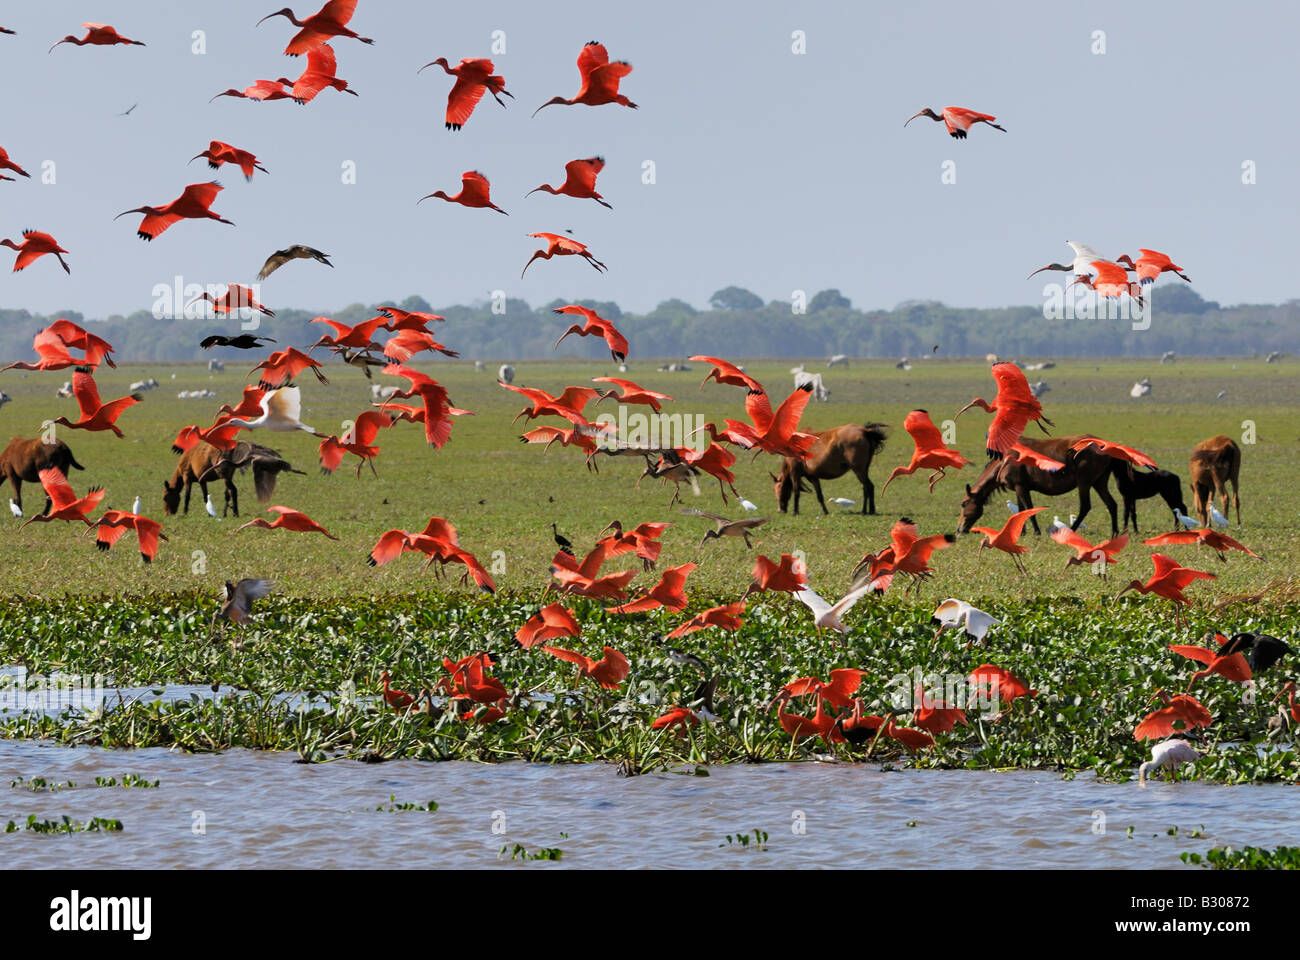 Swarm of Scarlet Ibis flying, Eudocimus ruber, LOS LLANOS, Venezuela, South America - Stock Image